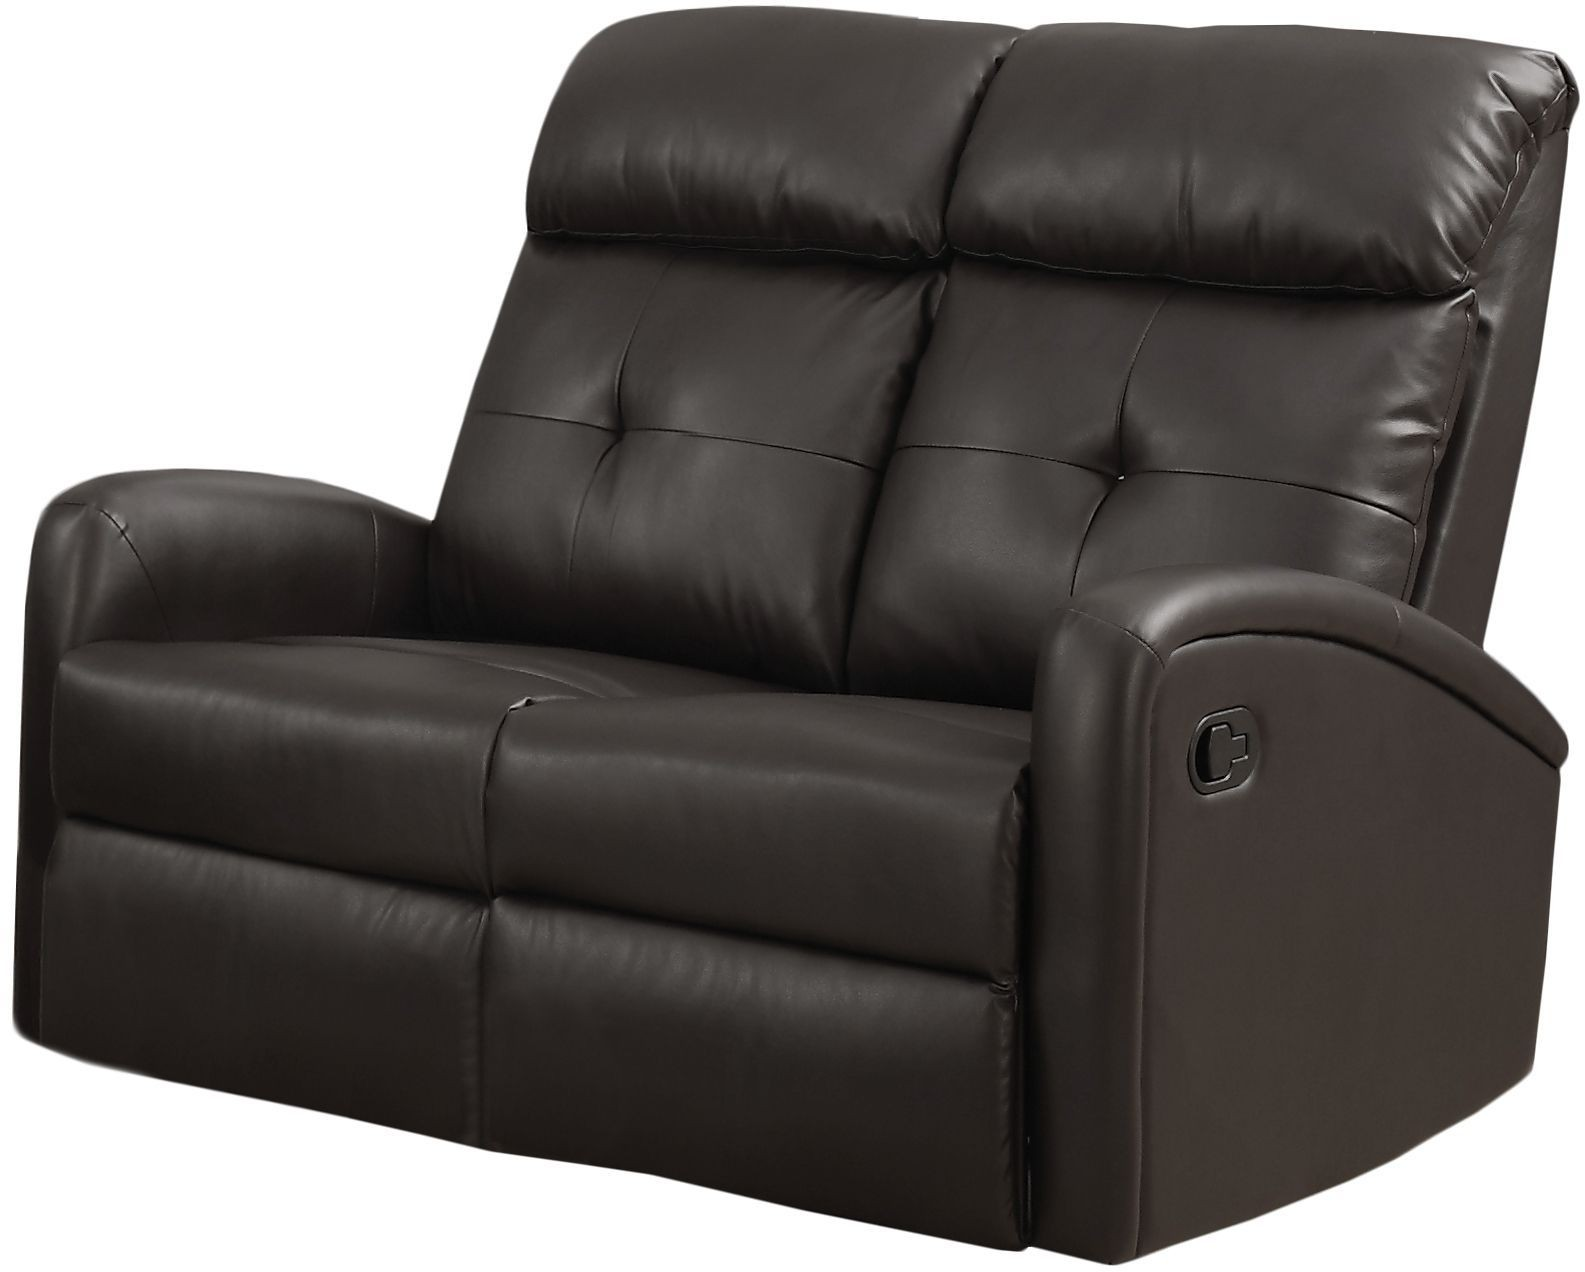 88br 2 Dark Brown Bonded Leather Reclining Loveseat From Monarch Coleman Furniture